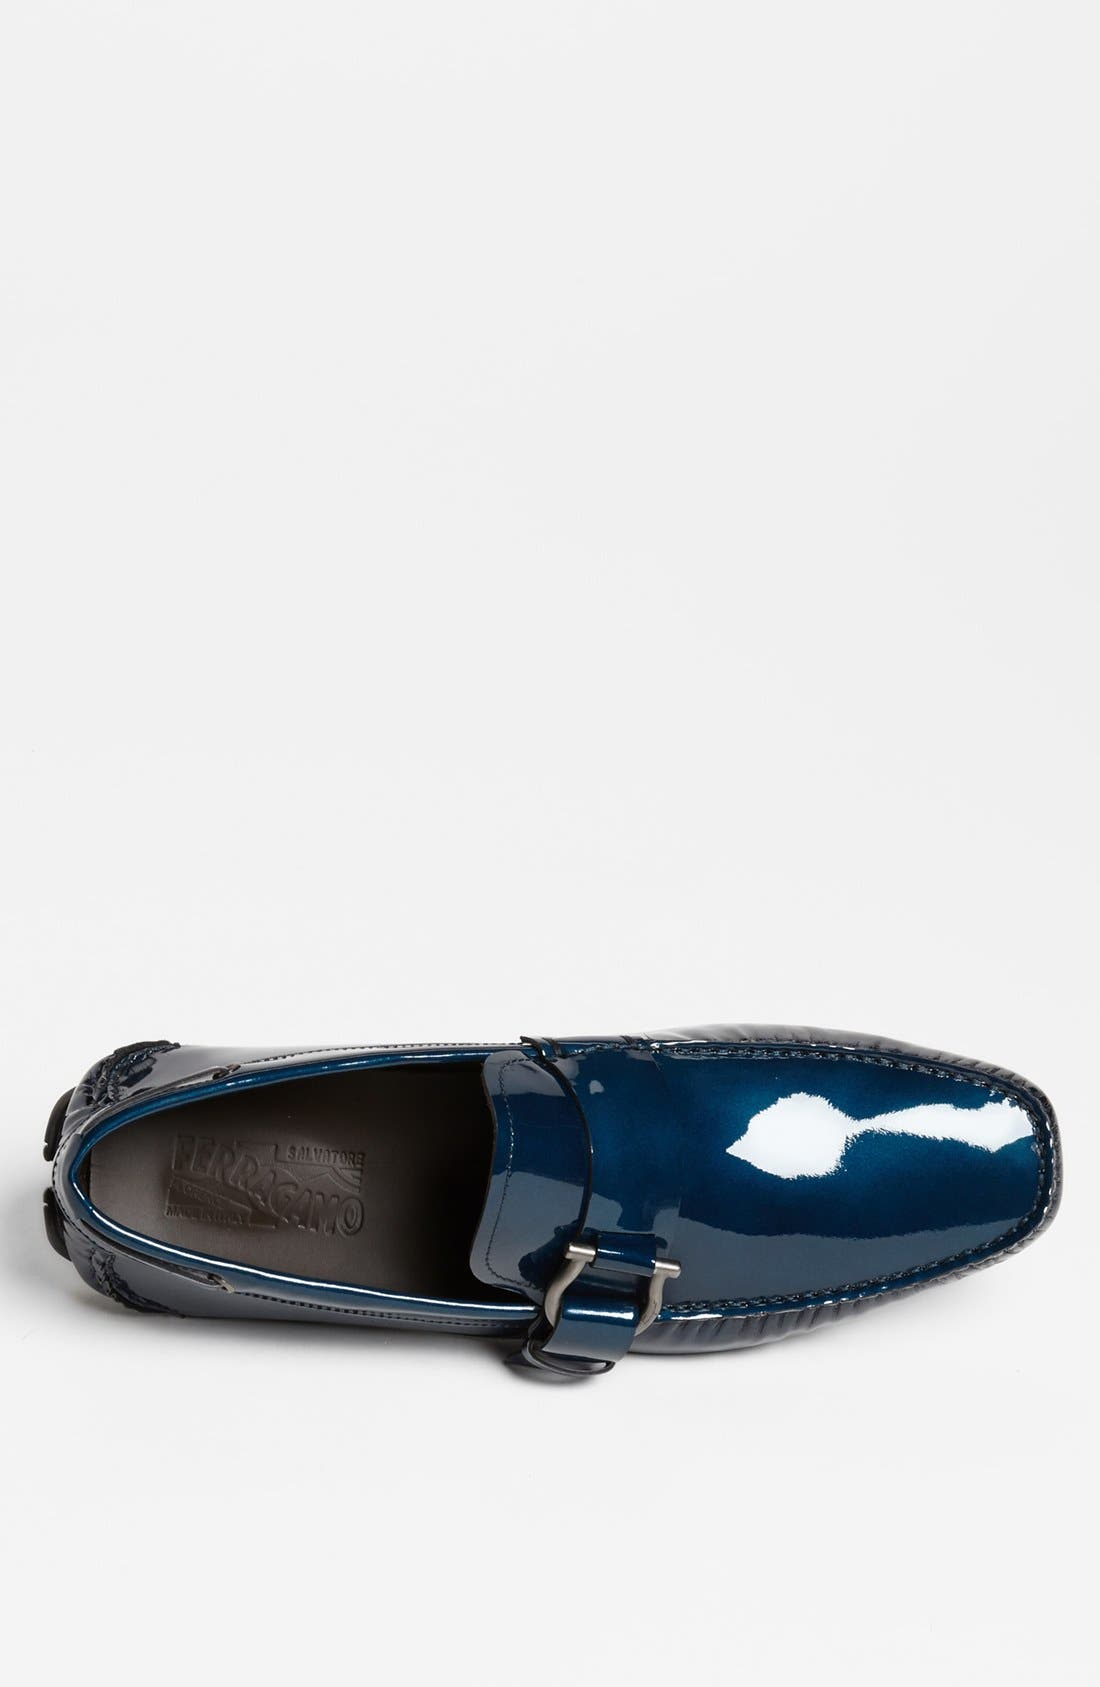 Alternate Image 3  - Salvatore Ferragamo 'Cabo' Driving Shoe